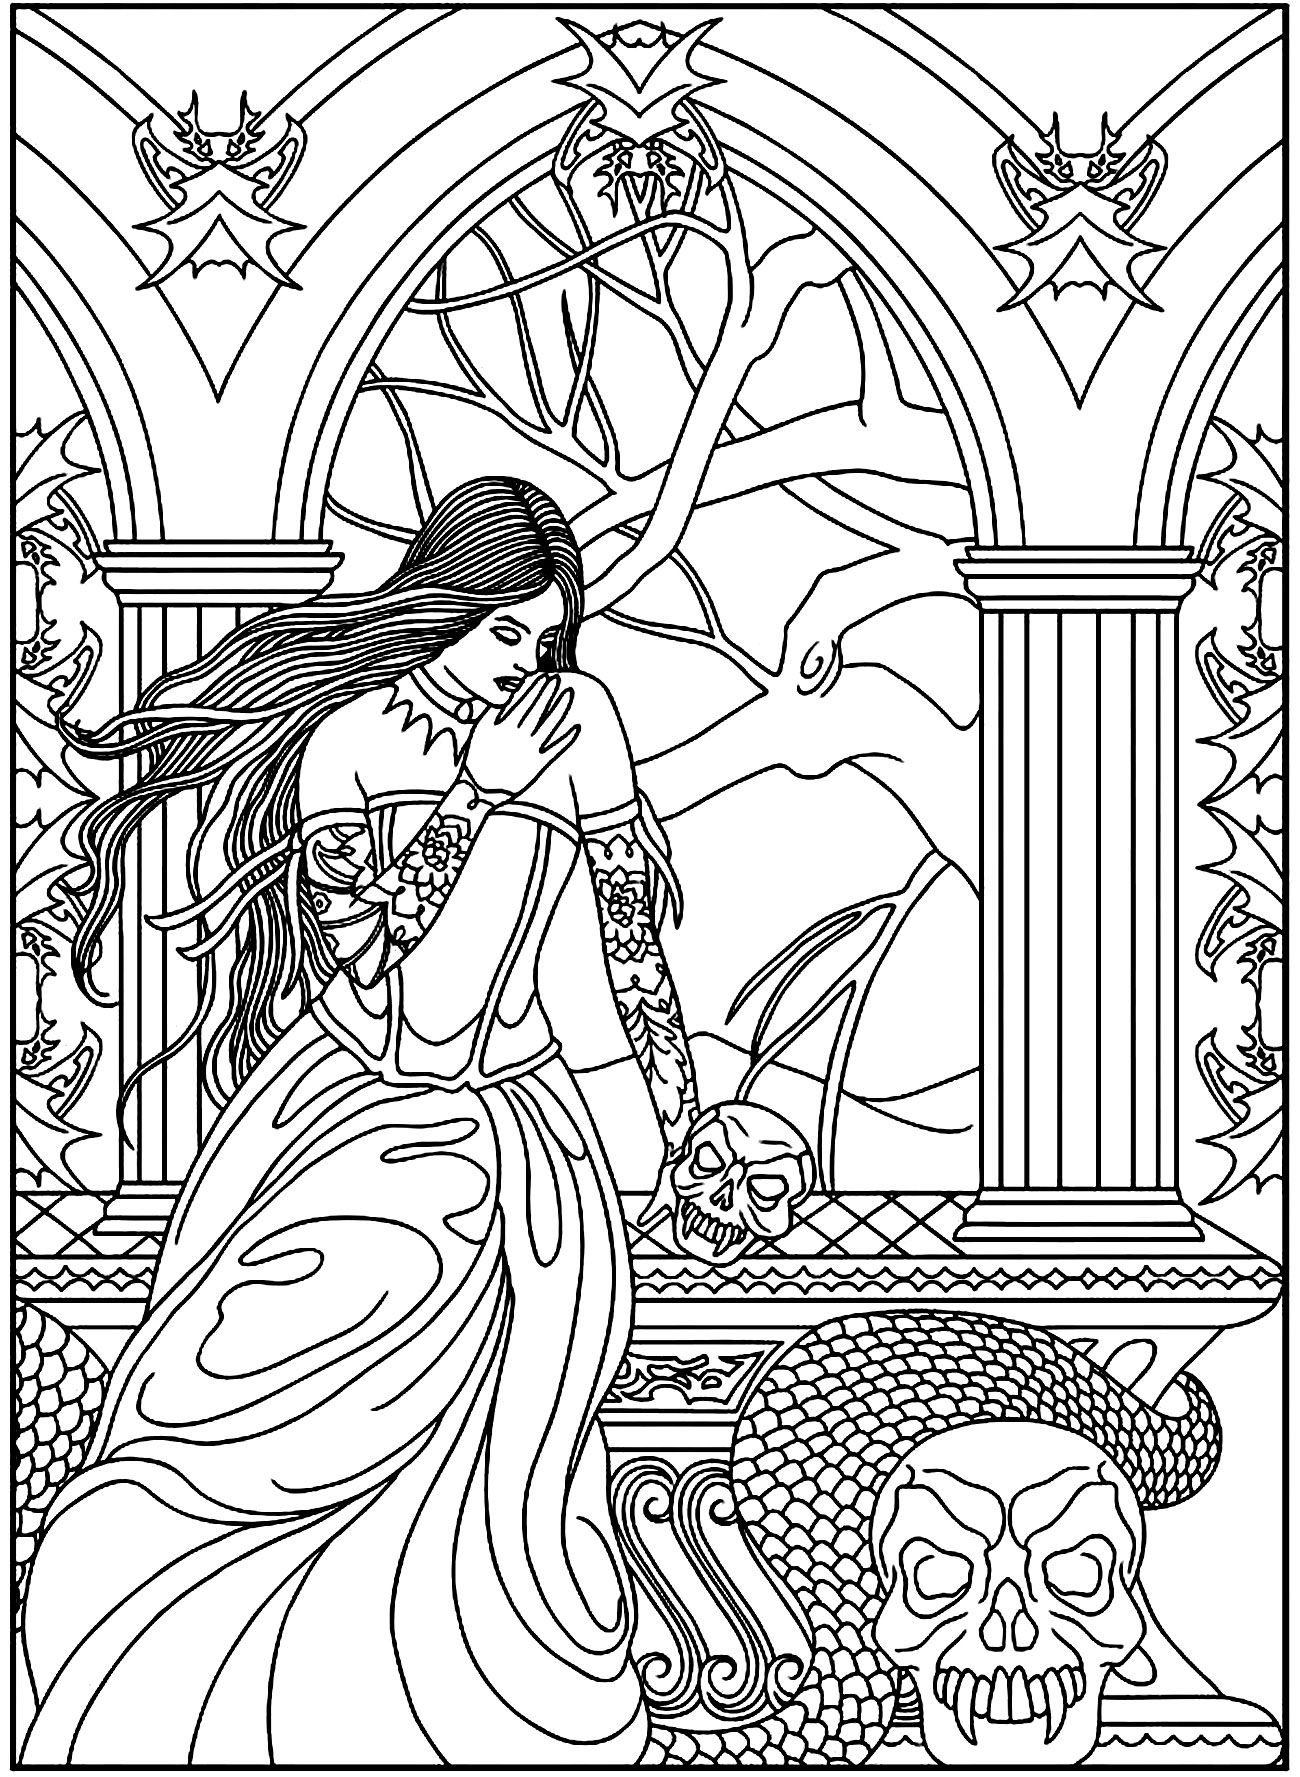 to print this free coloring page coloring fantasy woman